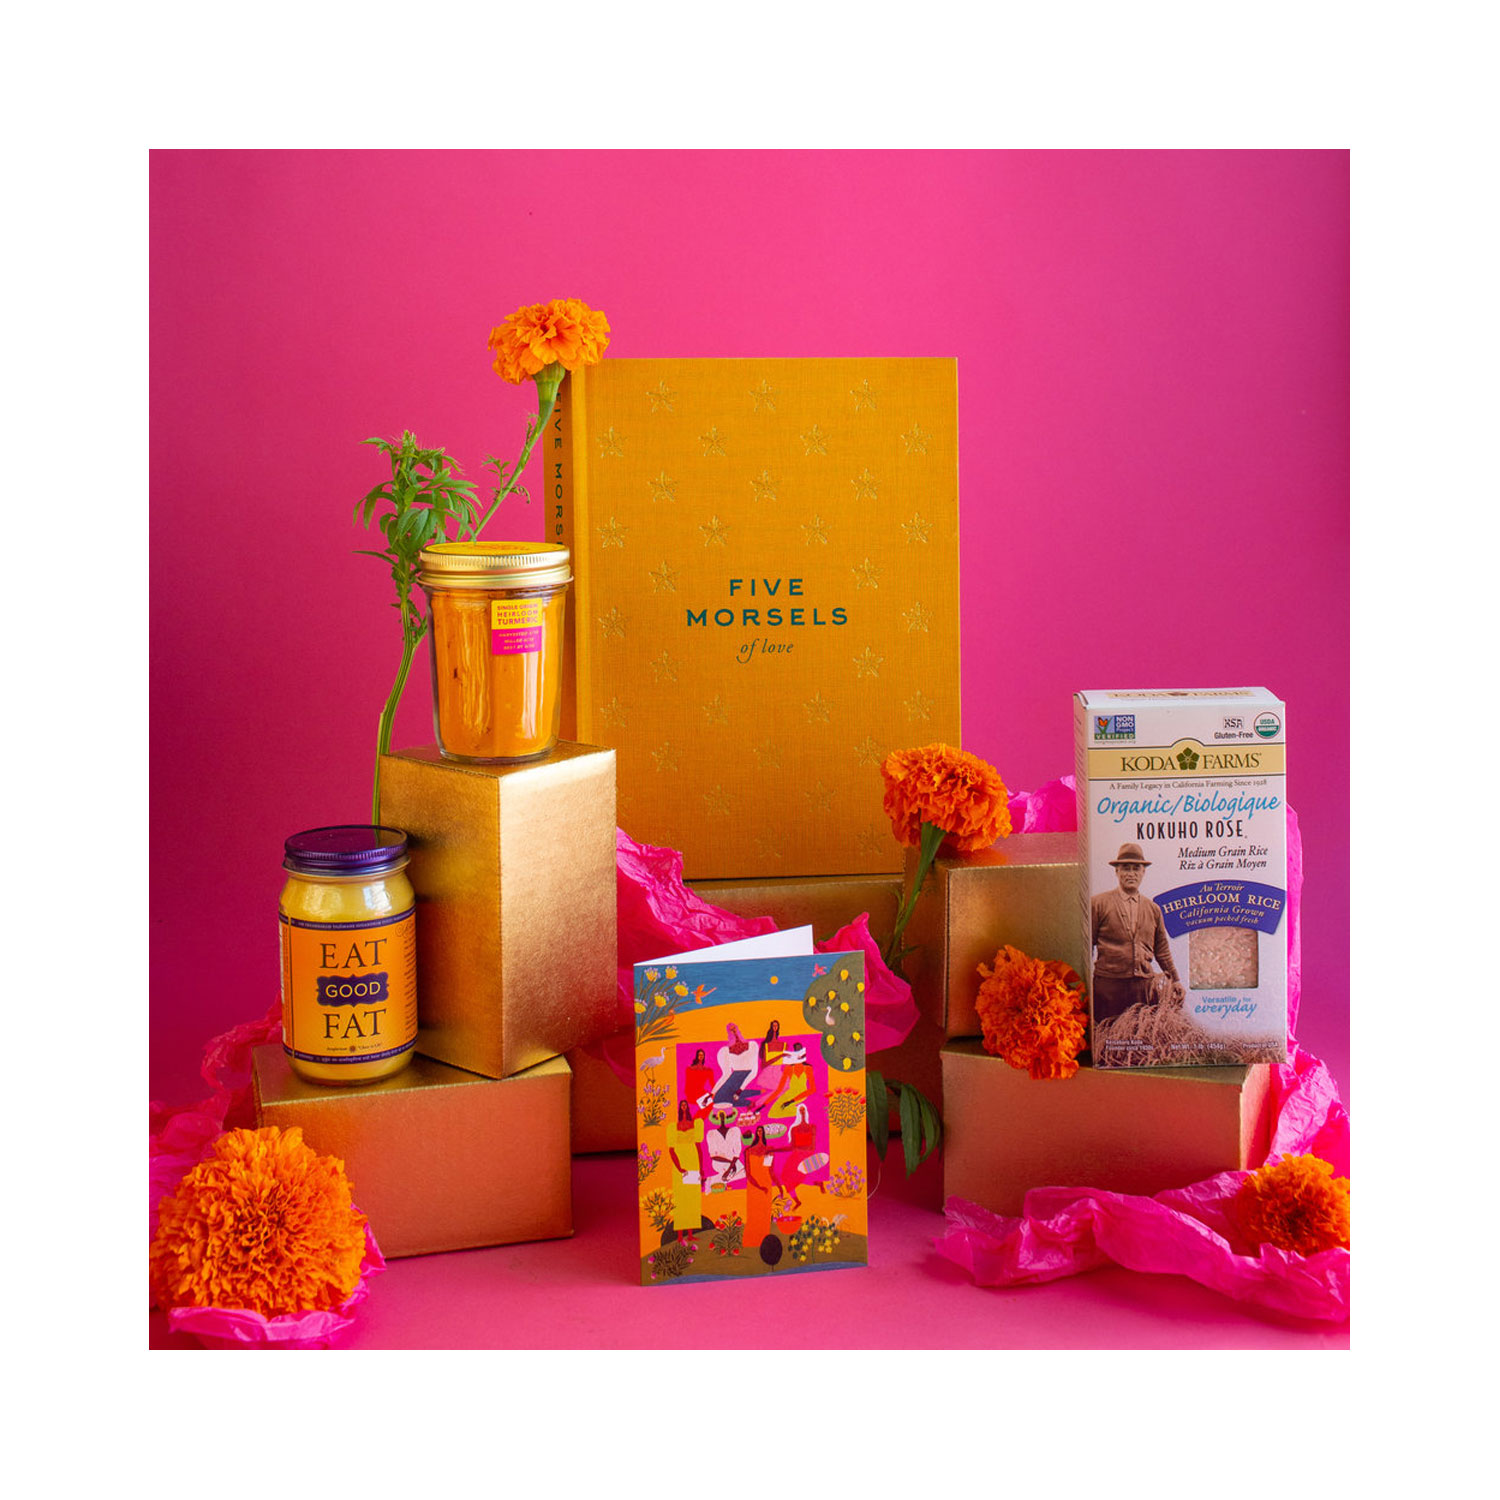 THE HEIRLOOM COOKING GIFT BOX BY DIASPORA CO.